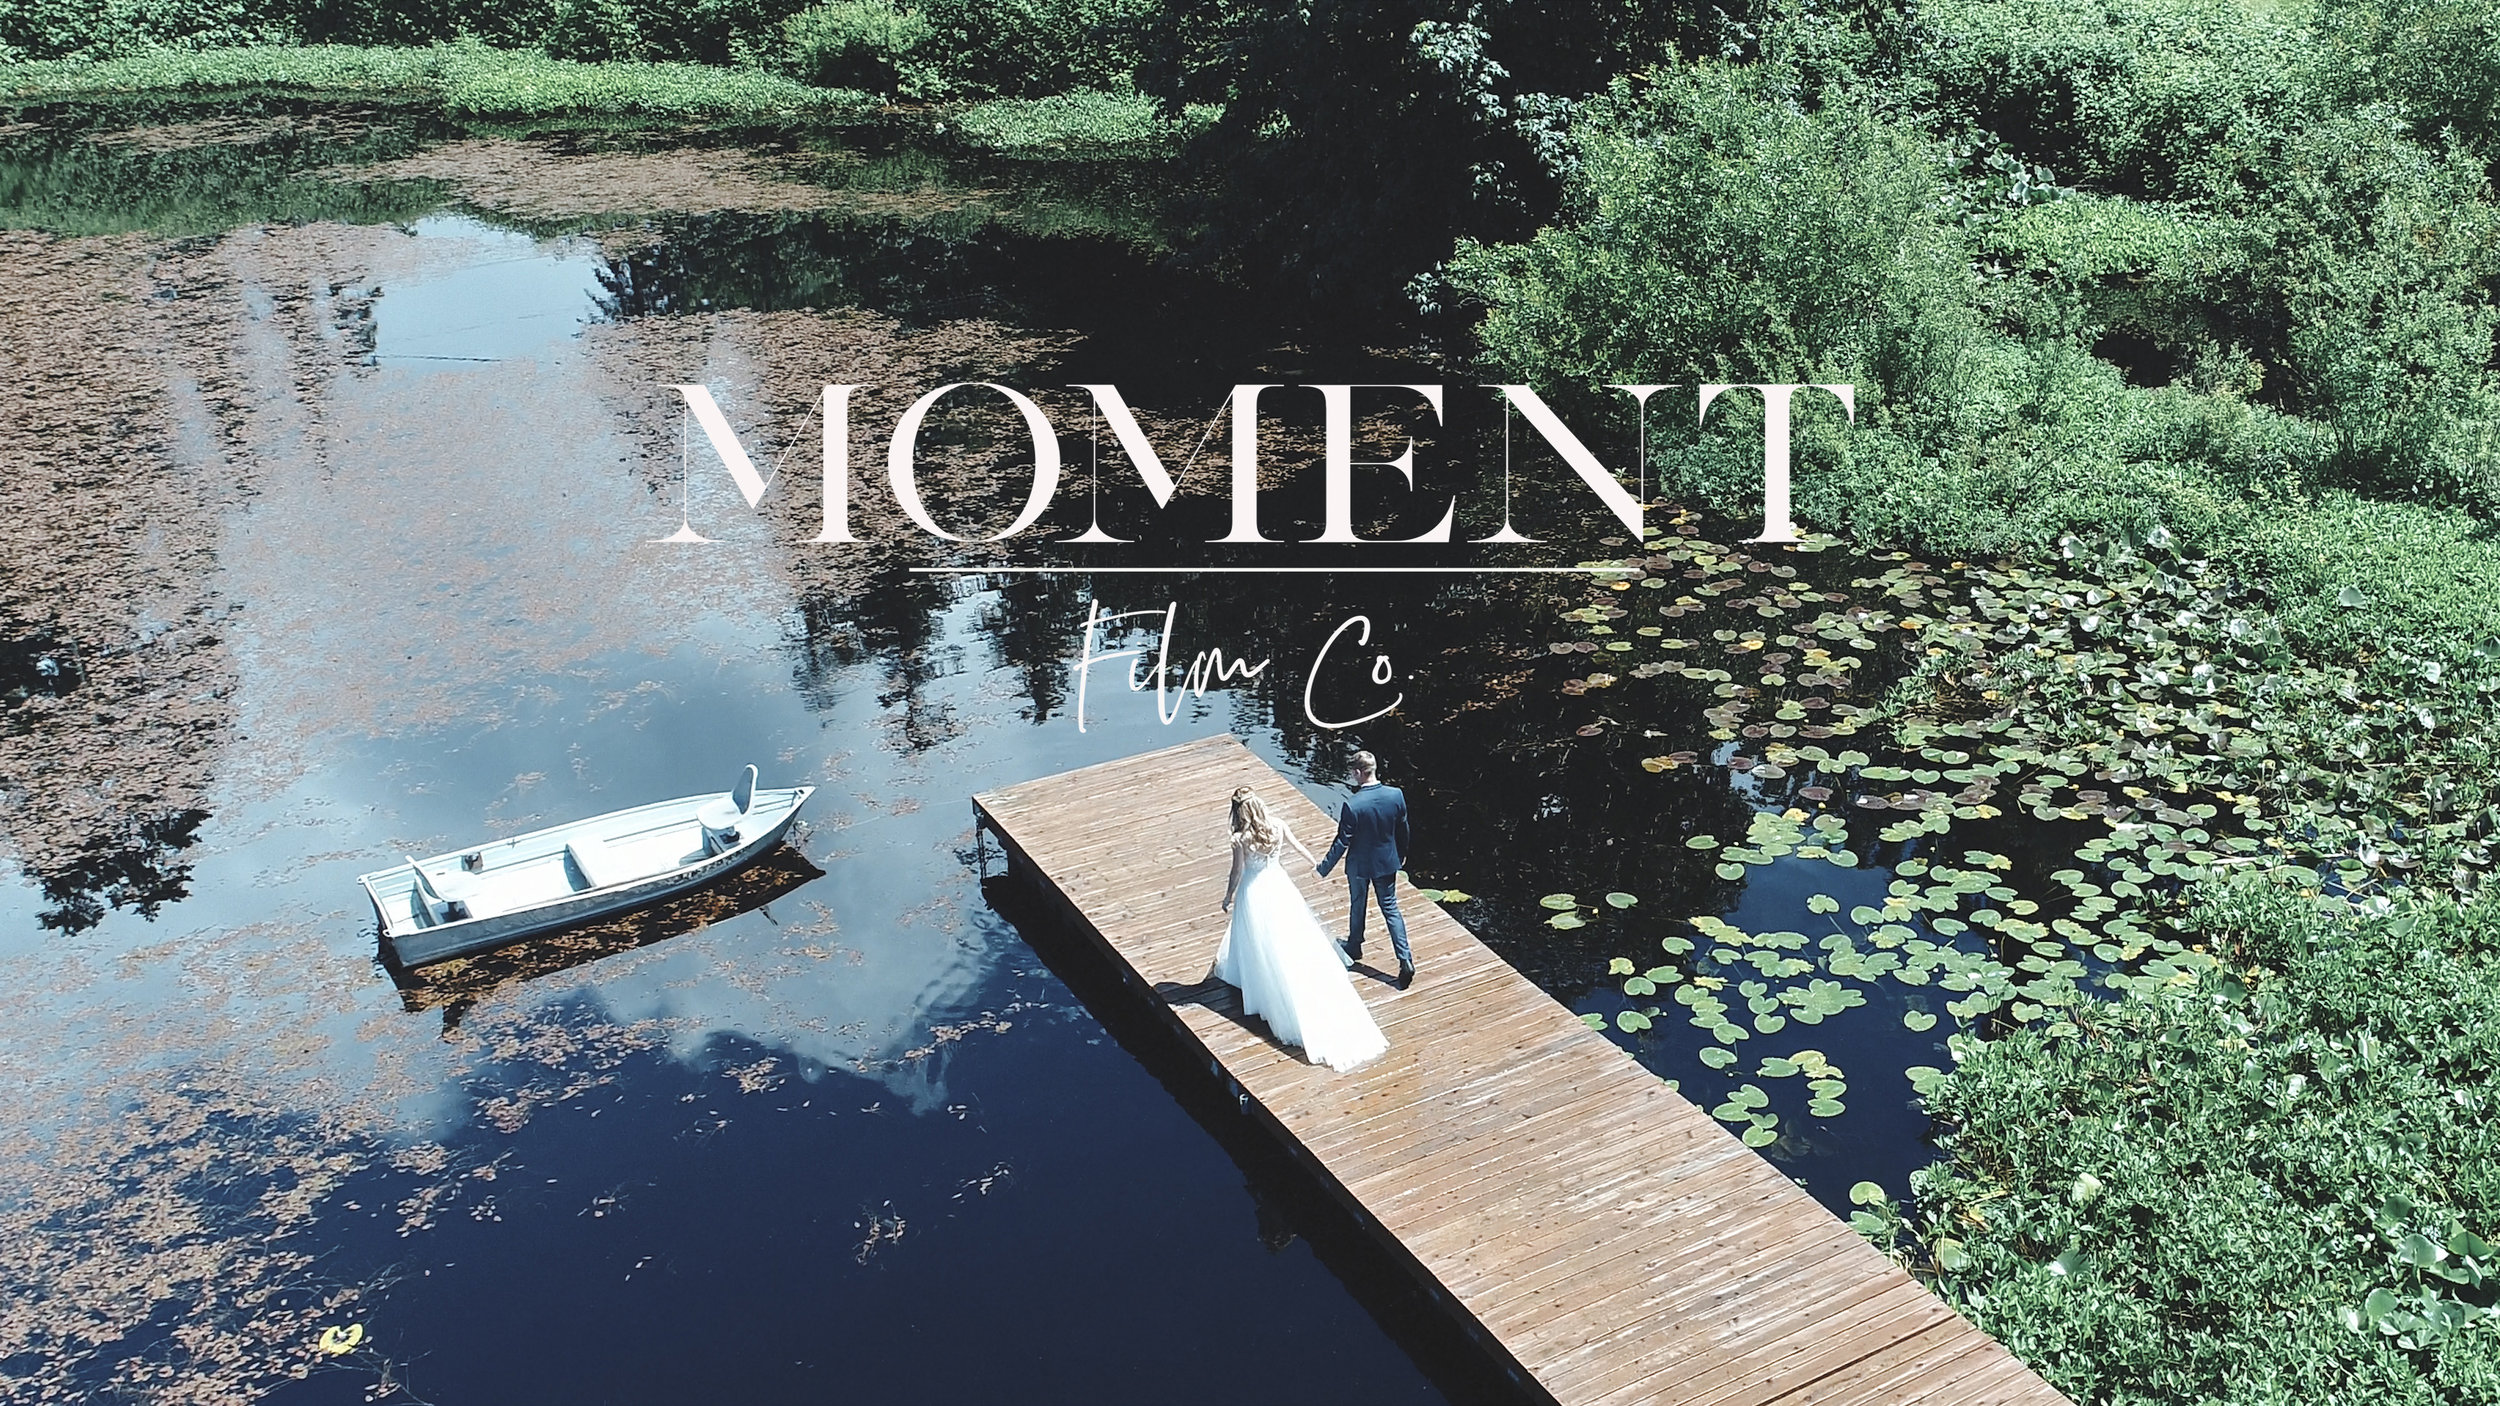 Moment Logo over pond.JPG